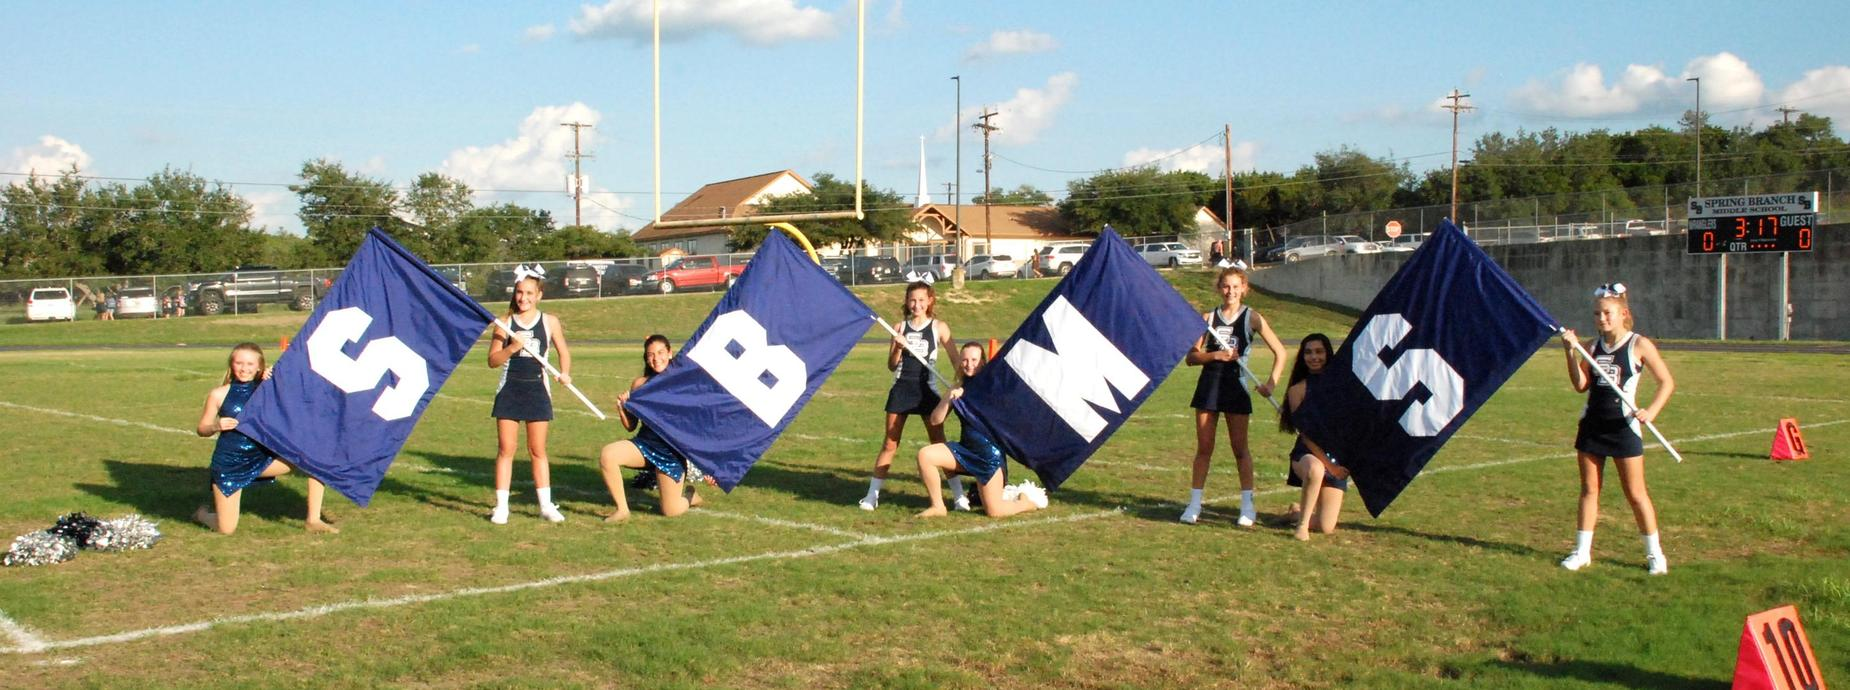 Cheerleaders holding SBMS flags